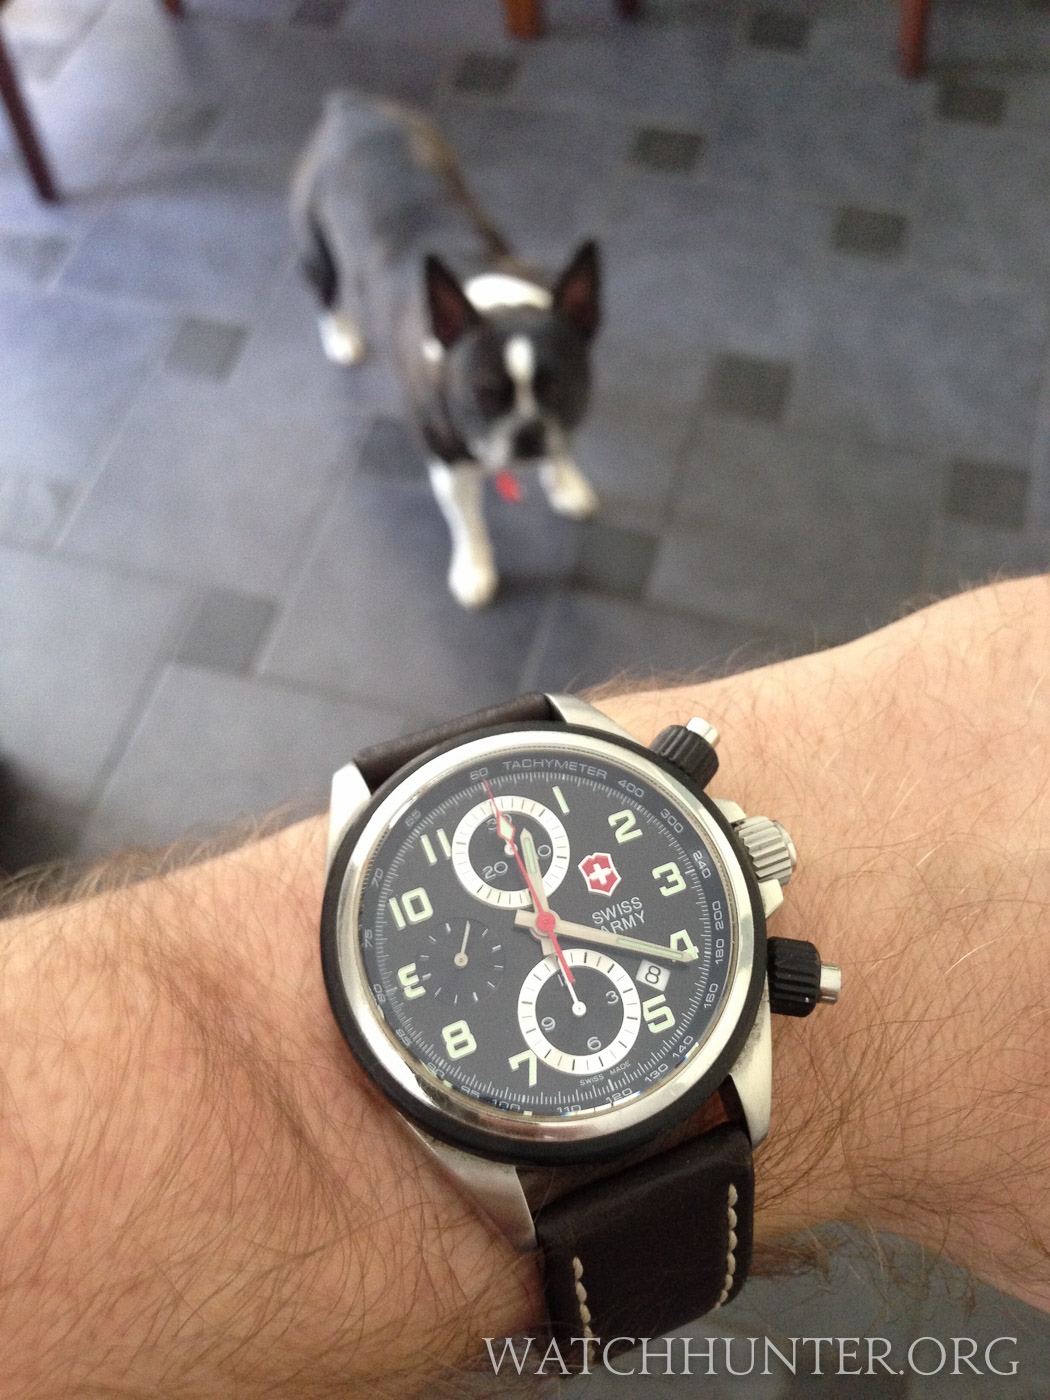 Zack the Boston Terrier thinks he perfectly matches my new acquired Chronopro watch